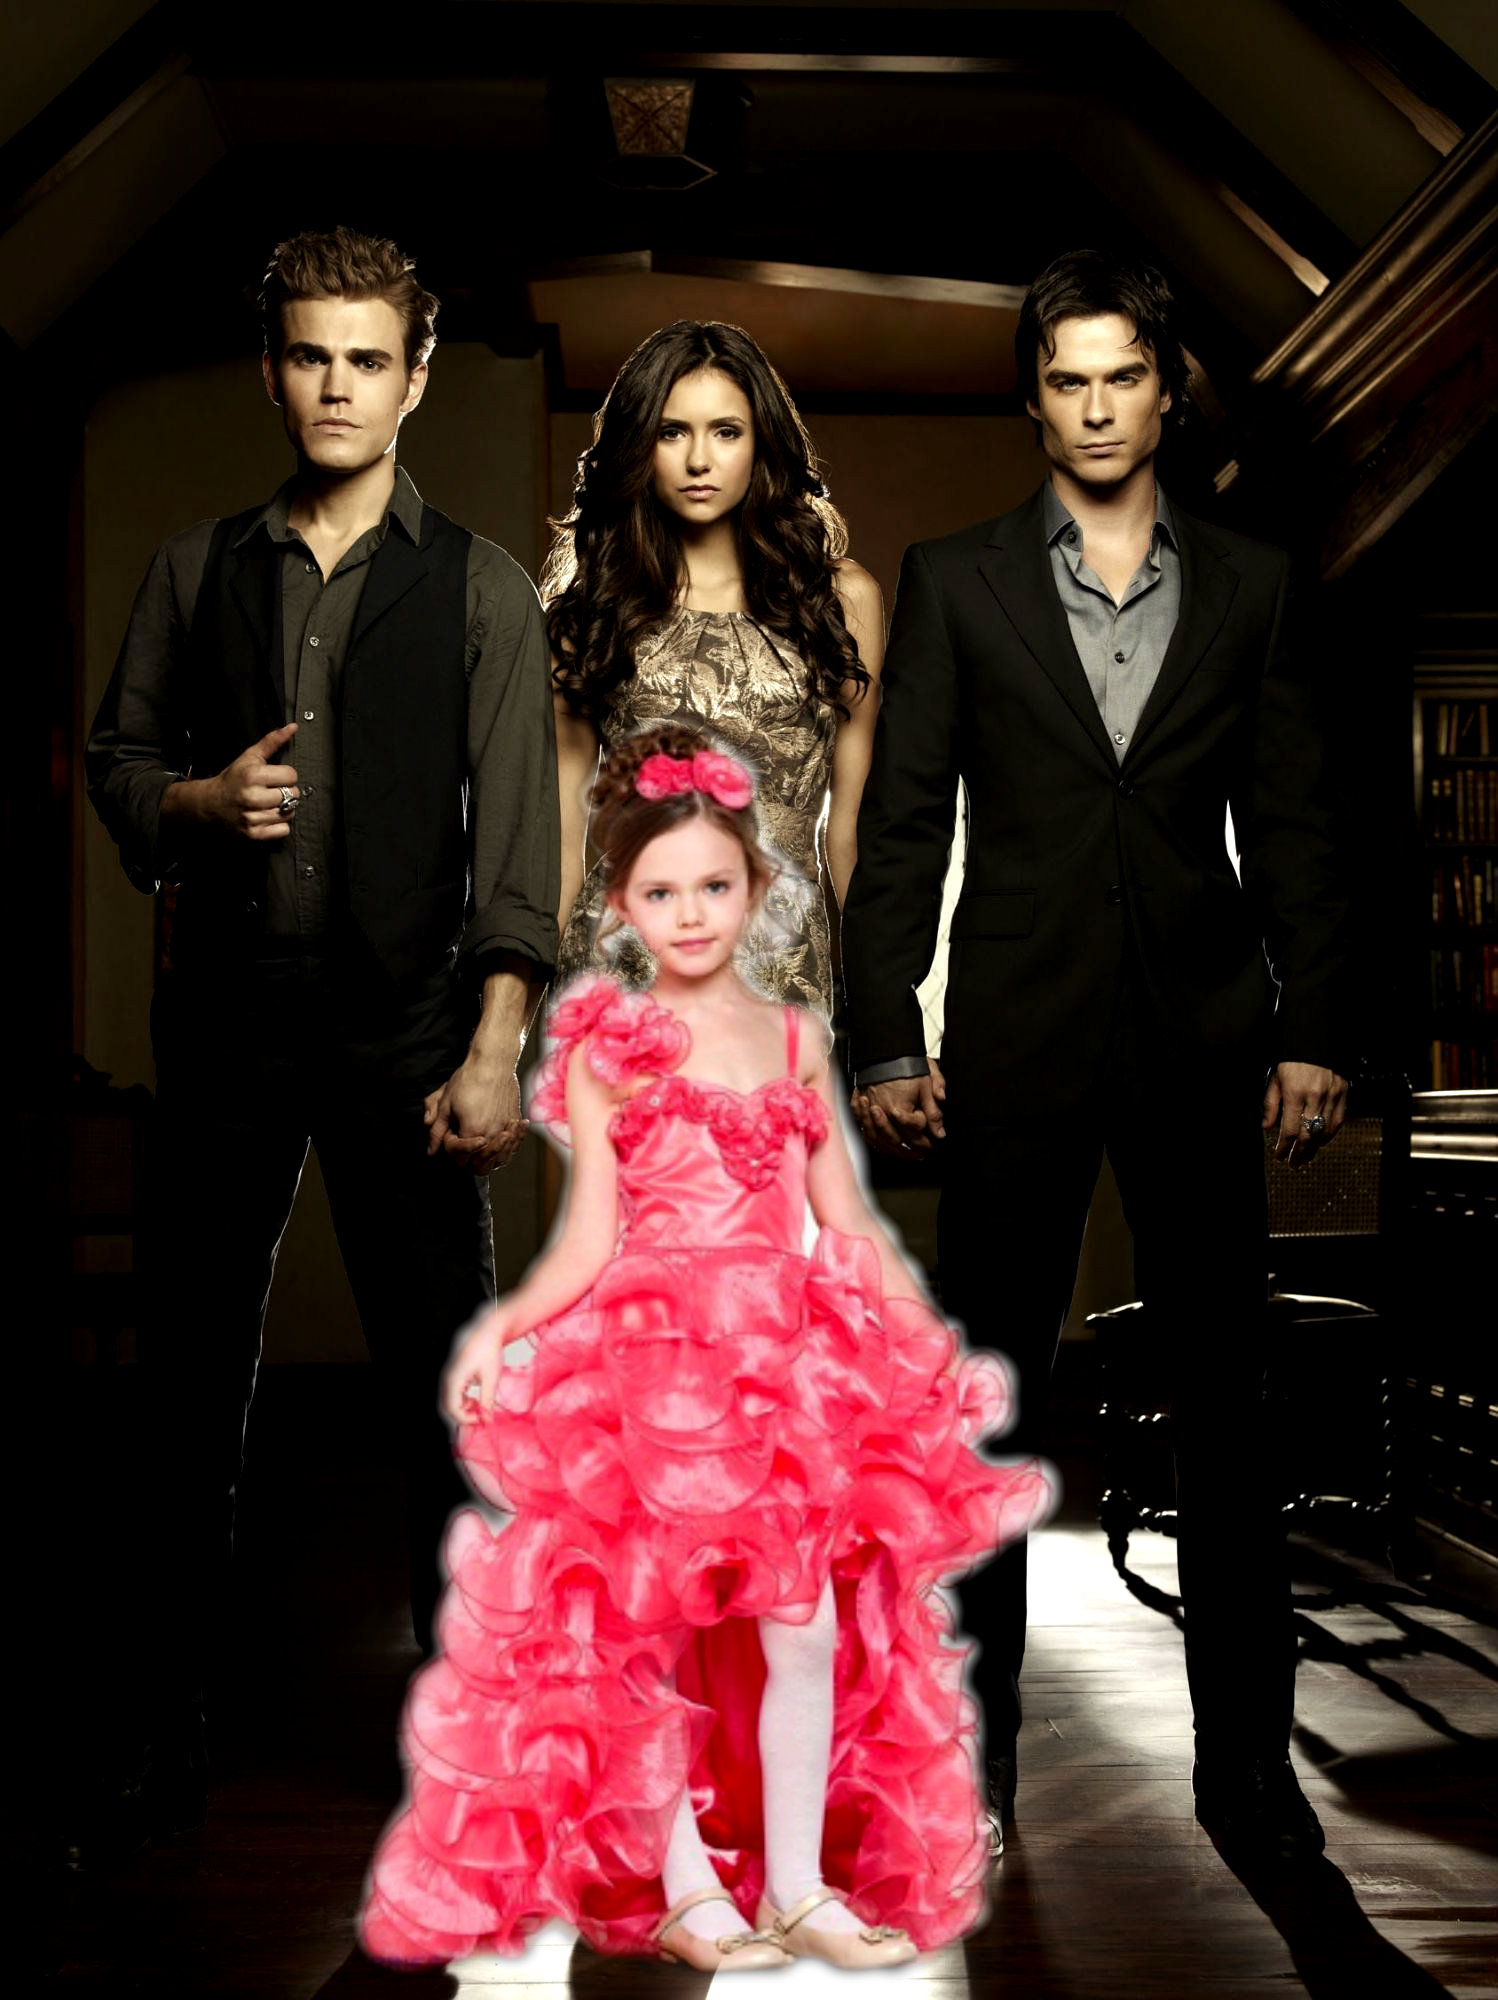 Category:Vampire | The Vampire Diaries Fanfiction Wiki